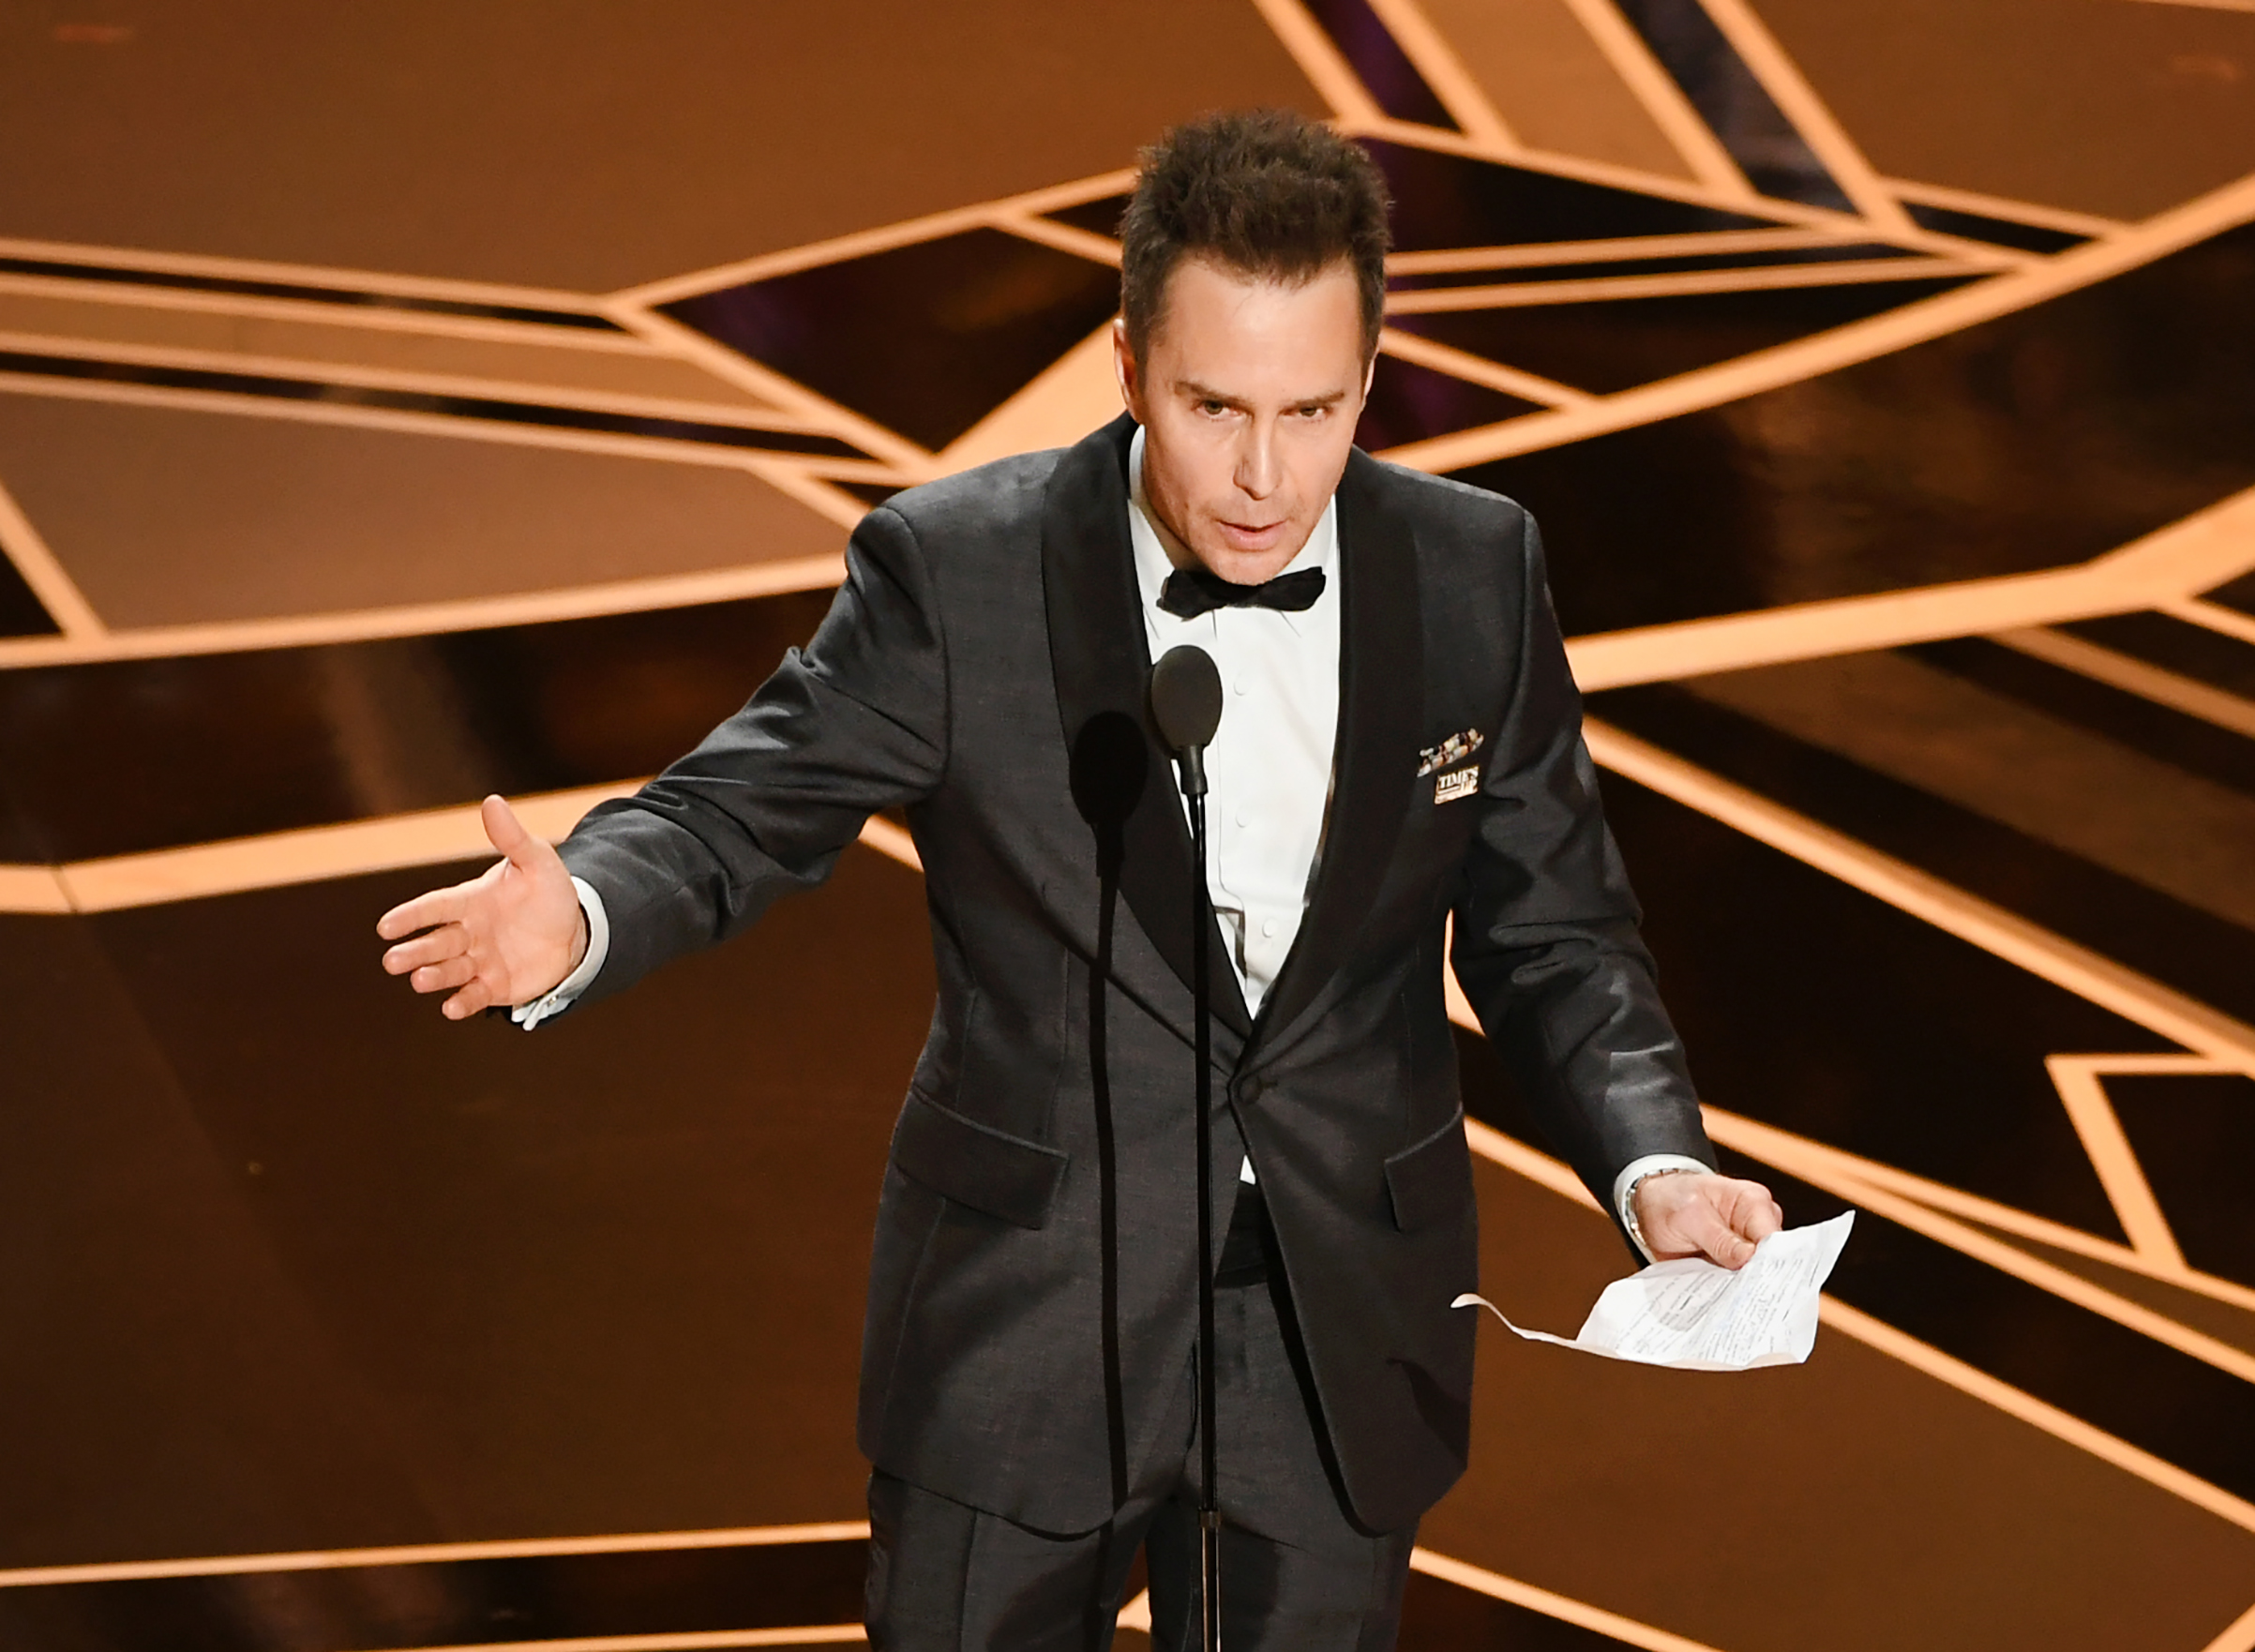 Actor Sam Rockwell accepts Best Suppoorting Actor for 'Three Billboards Outside Ebbing, Missouri' onstage at the 90th Annual Academy Awards at the Dolby Theatre at Hollywood & Highland Center on March 4, 2018 in Hollywood.